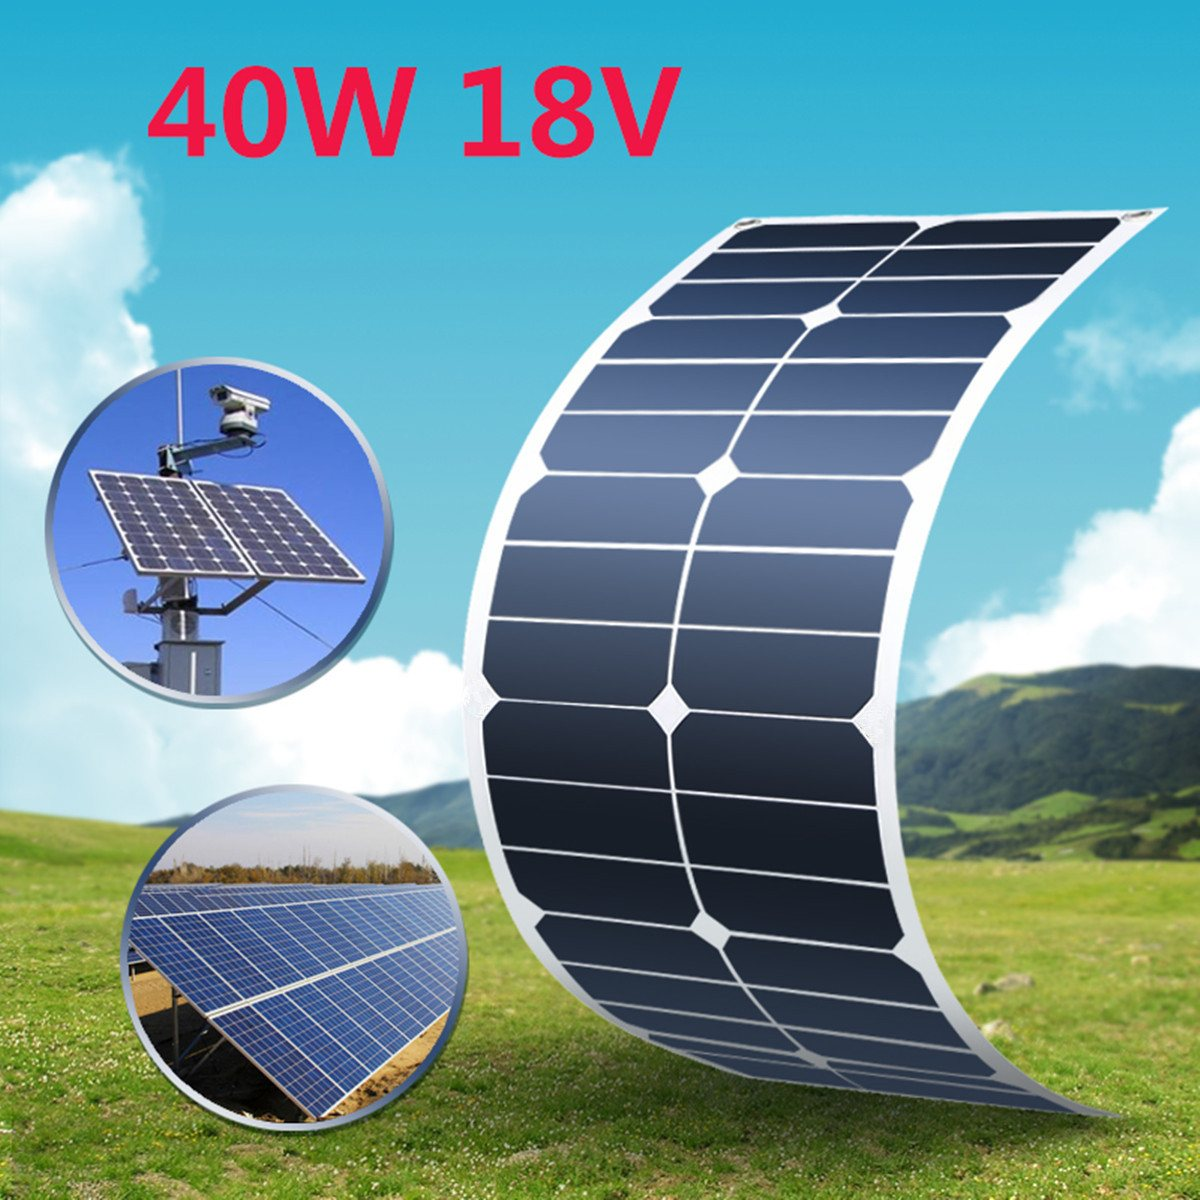 KINCO 40W/18V Semi-Flexible Solar Panel Monocrystalline Silicon Solar System Power Supply For Car Charger +MC4 Connector Cable